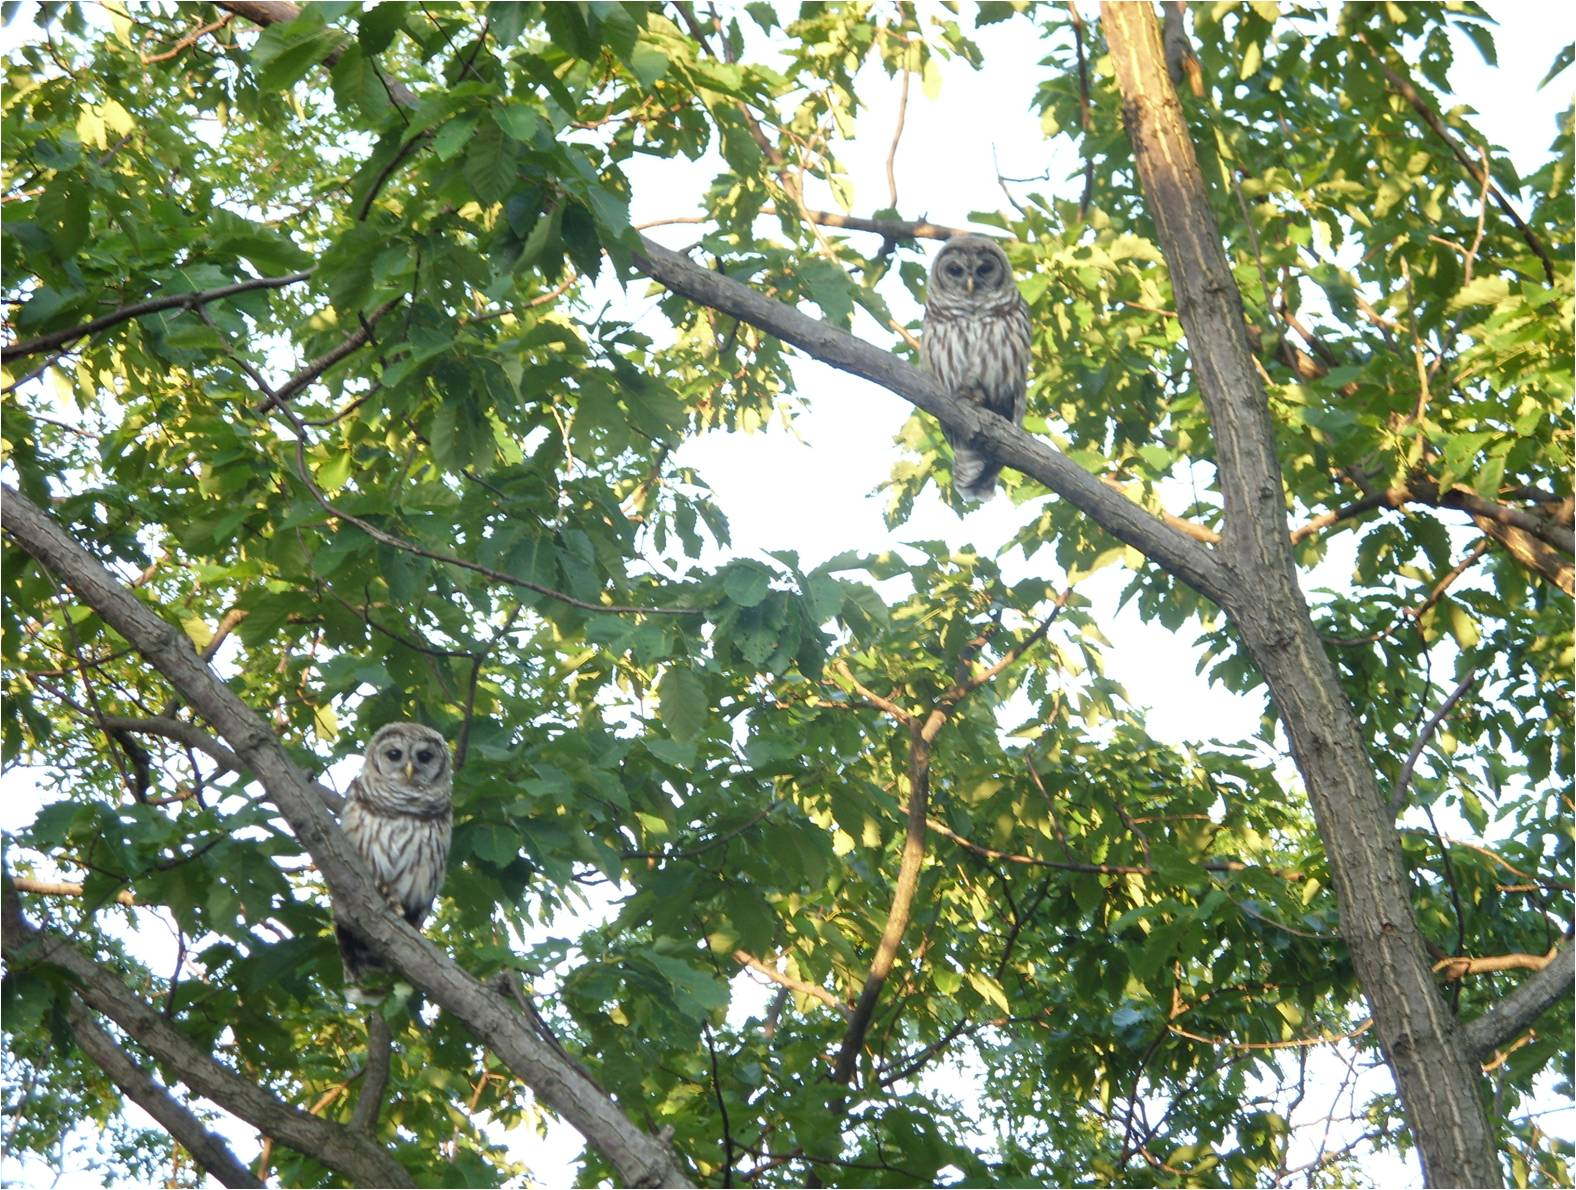 Two owls in a tree.